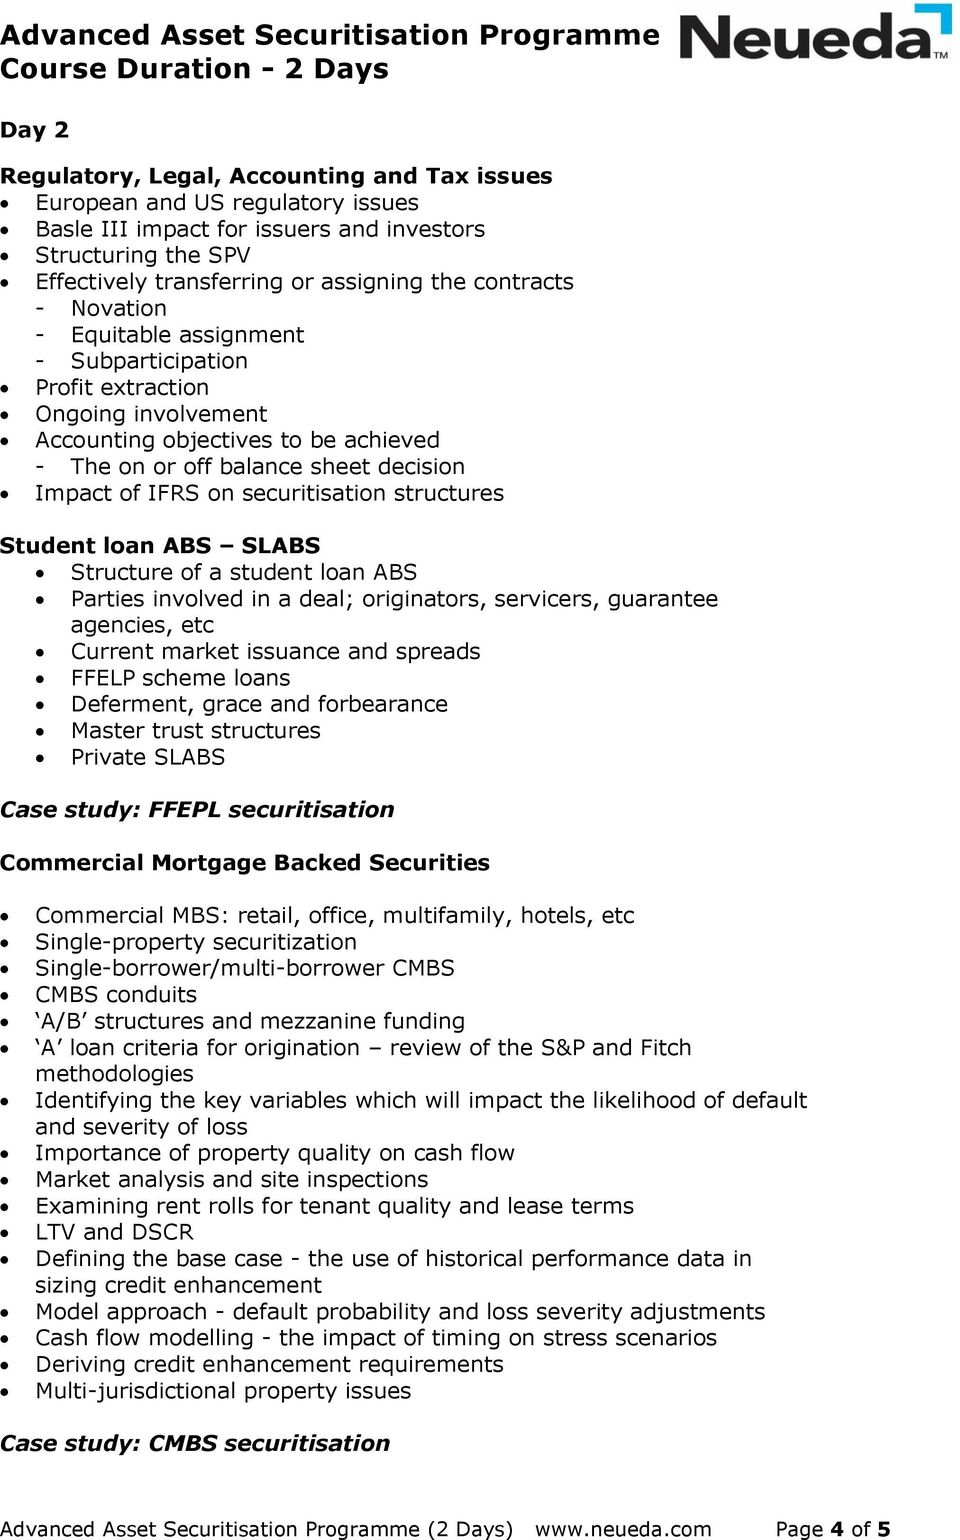 structures Student loan ABS SLABS Structure of a student loan ABS Parties involved in a deal; originators, servicers, guarantee agencies, etc Current market issuance and spreads FFELP scheme loans